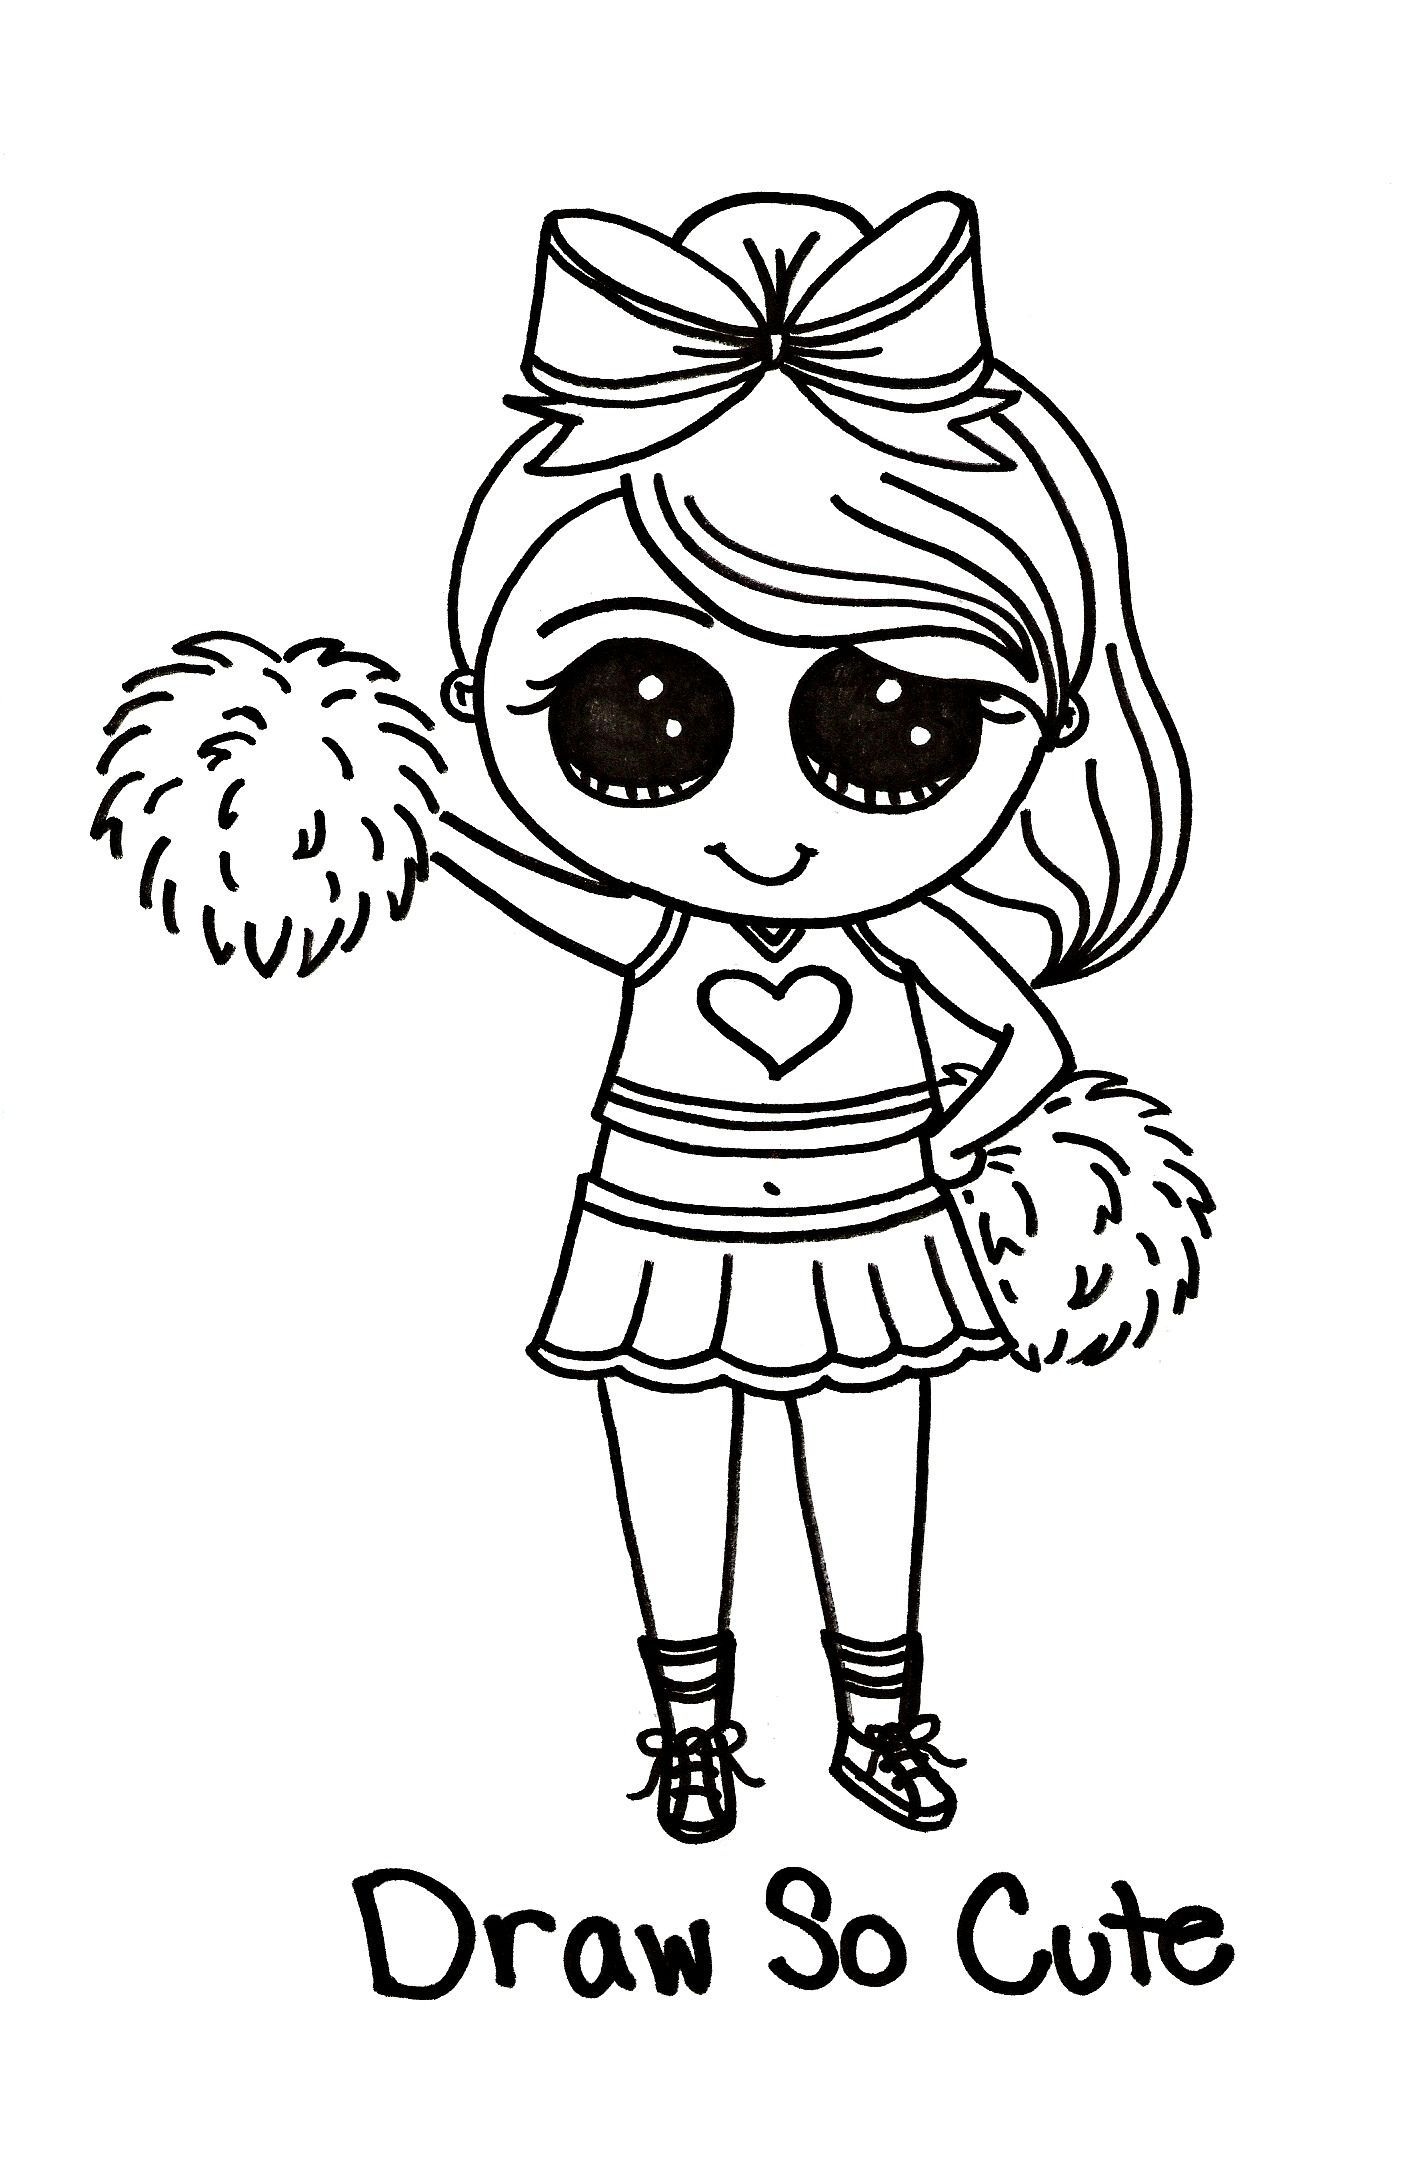 Draw So Cute Unicorn Girl Coloring Pages Unicorn Coloring Pages Cute Coloring Pages Cute Drawings